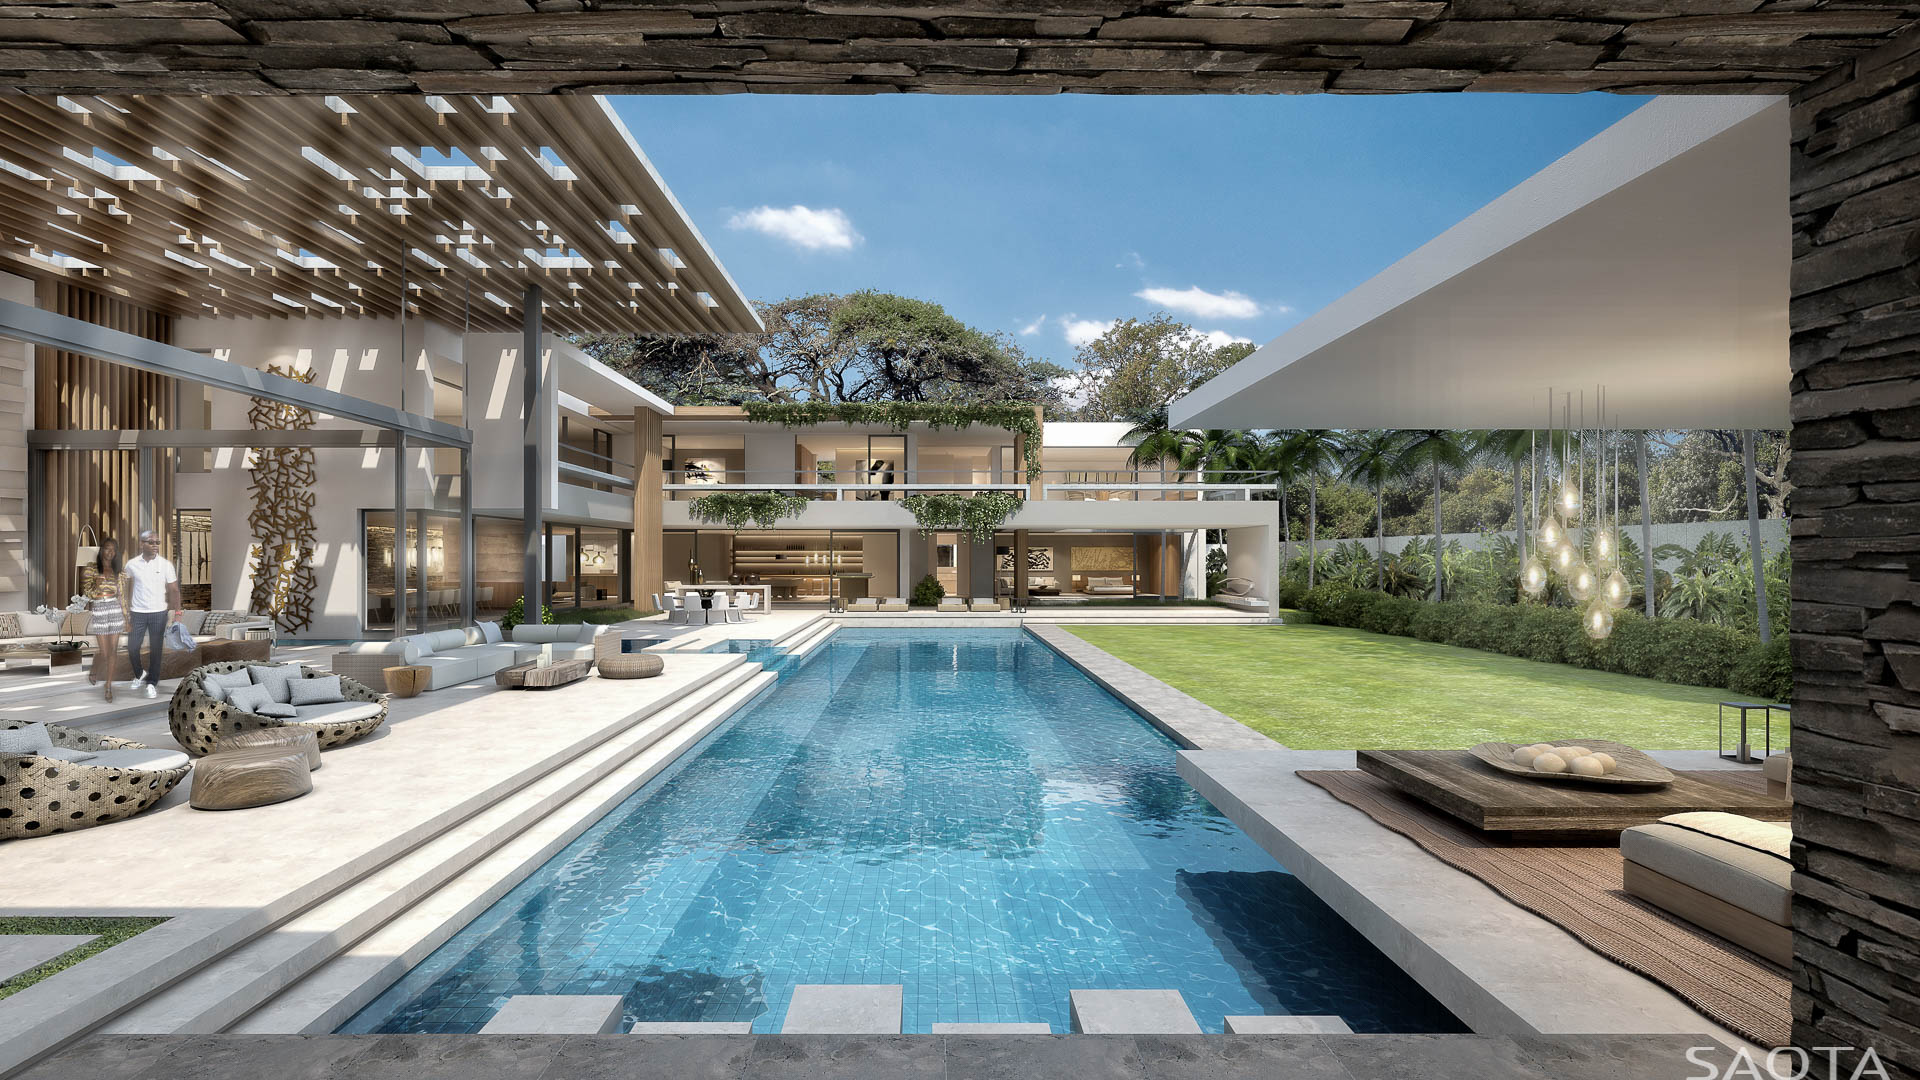 30 yet to be built modern dream homes by saota part 1 for Luxury architecture